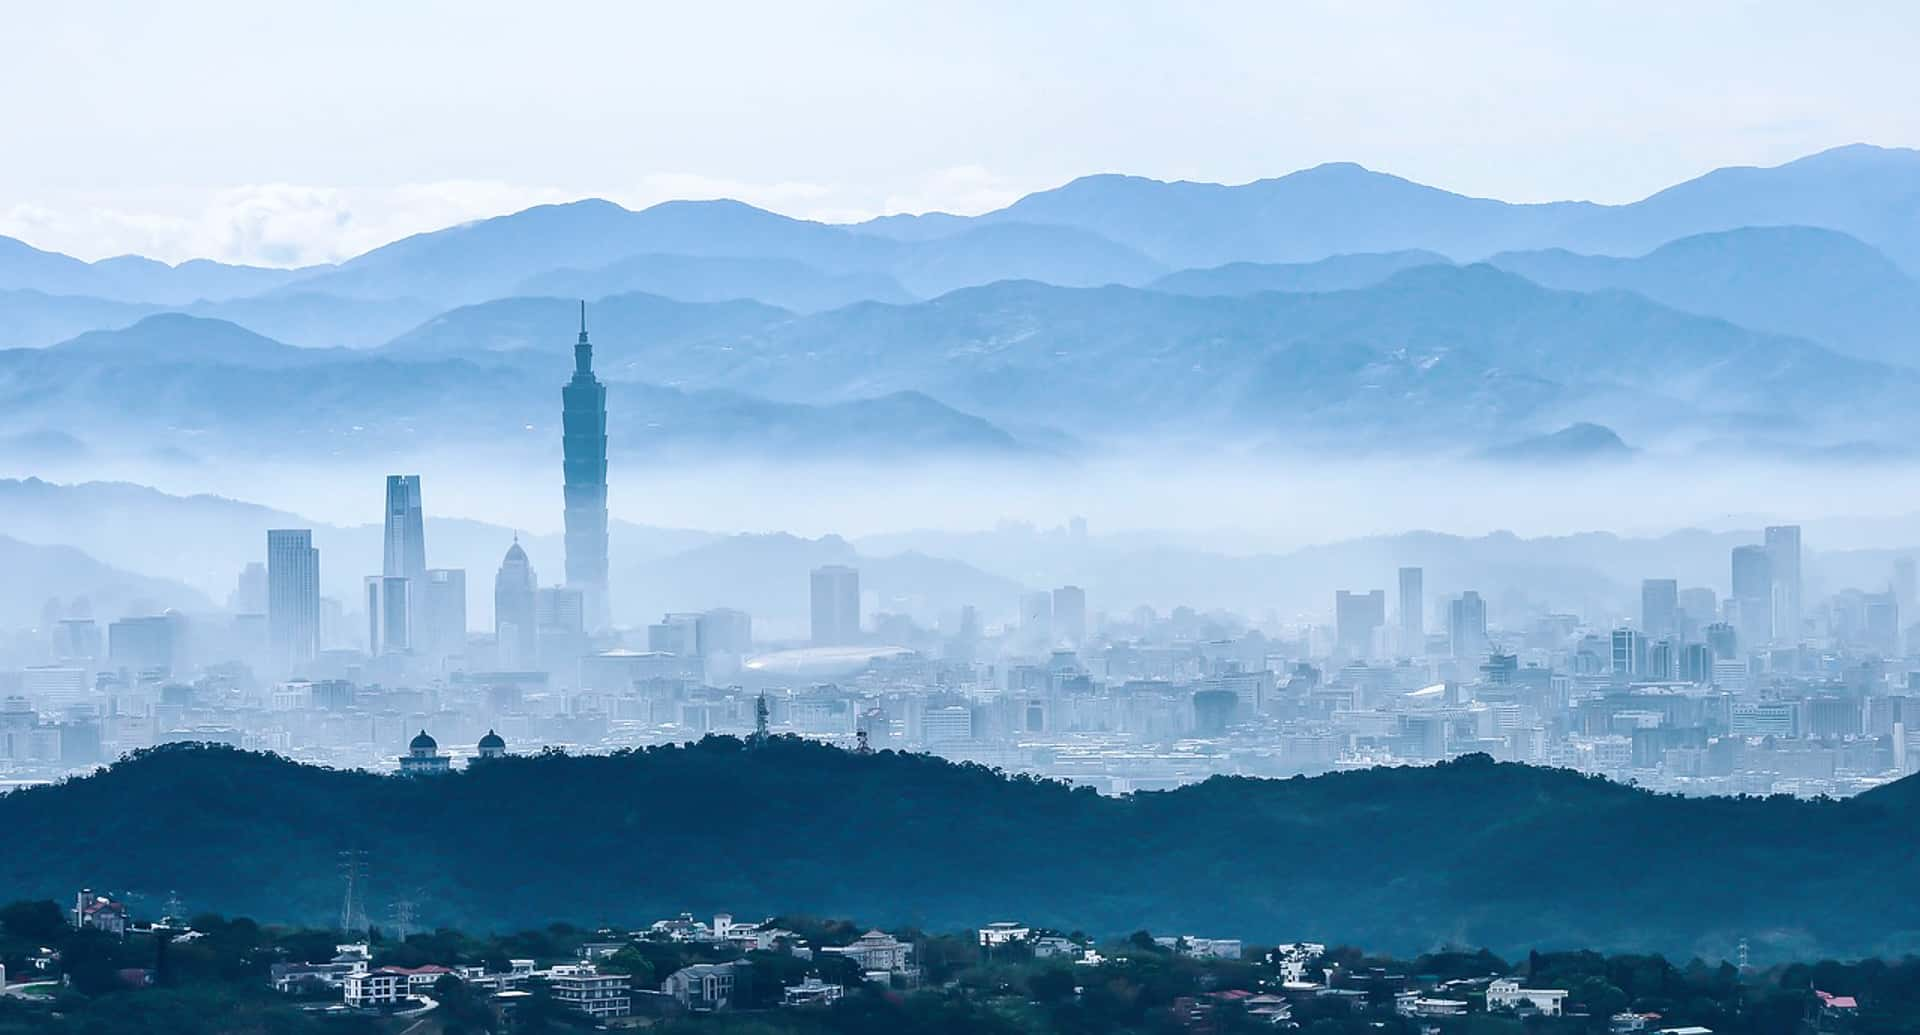 50 Unmissable Things to Do in Taipei: The Ultimate Taipei Travel Guide